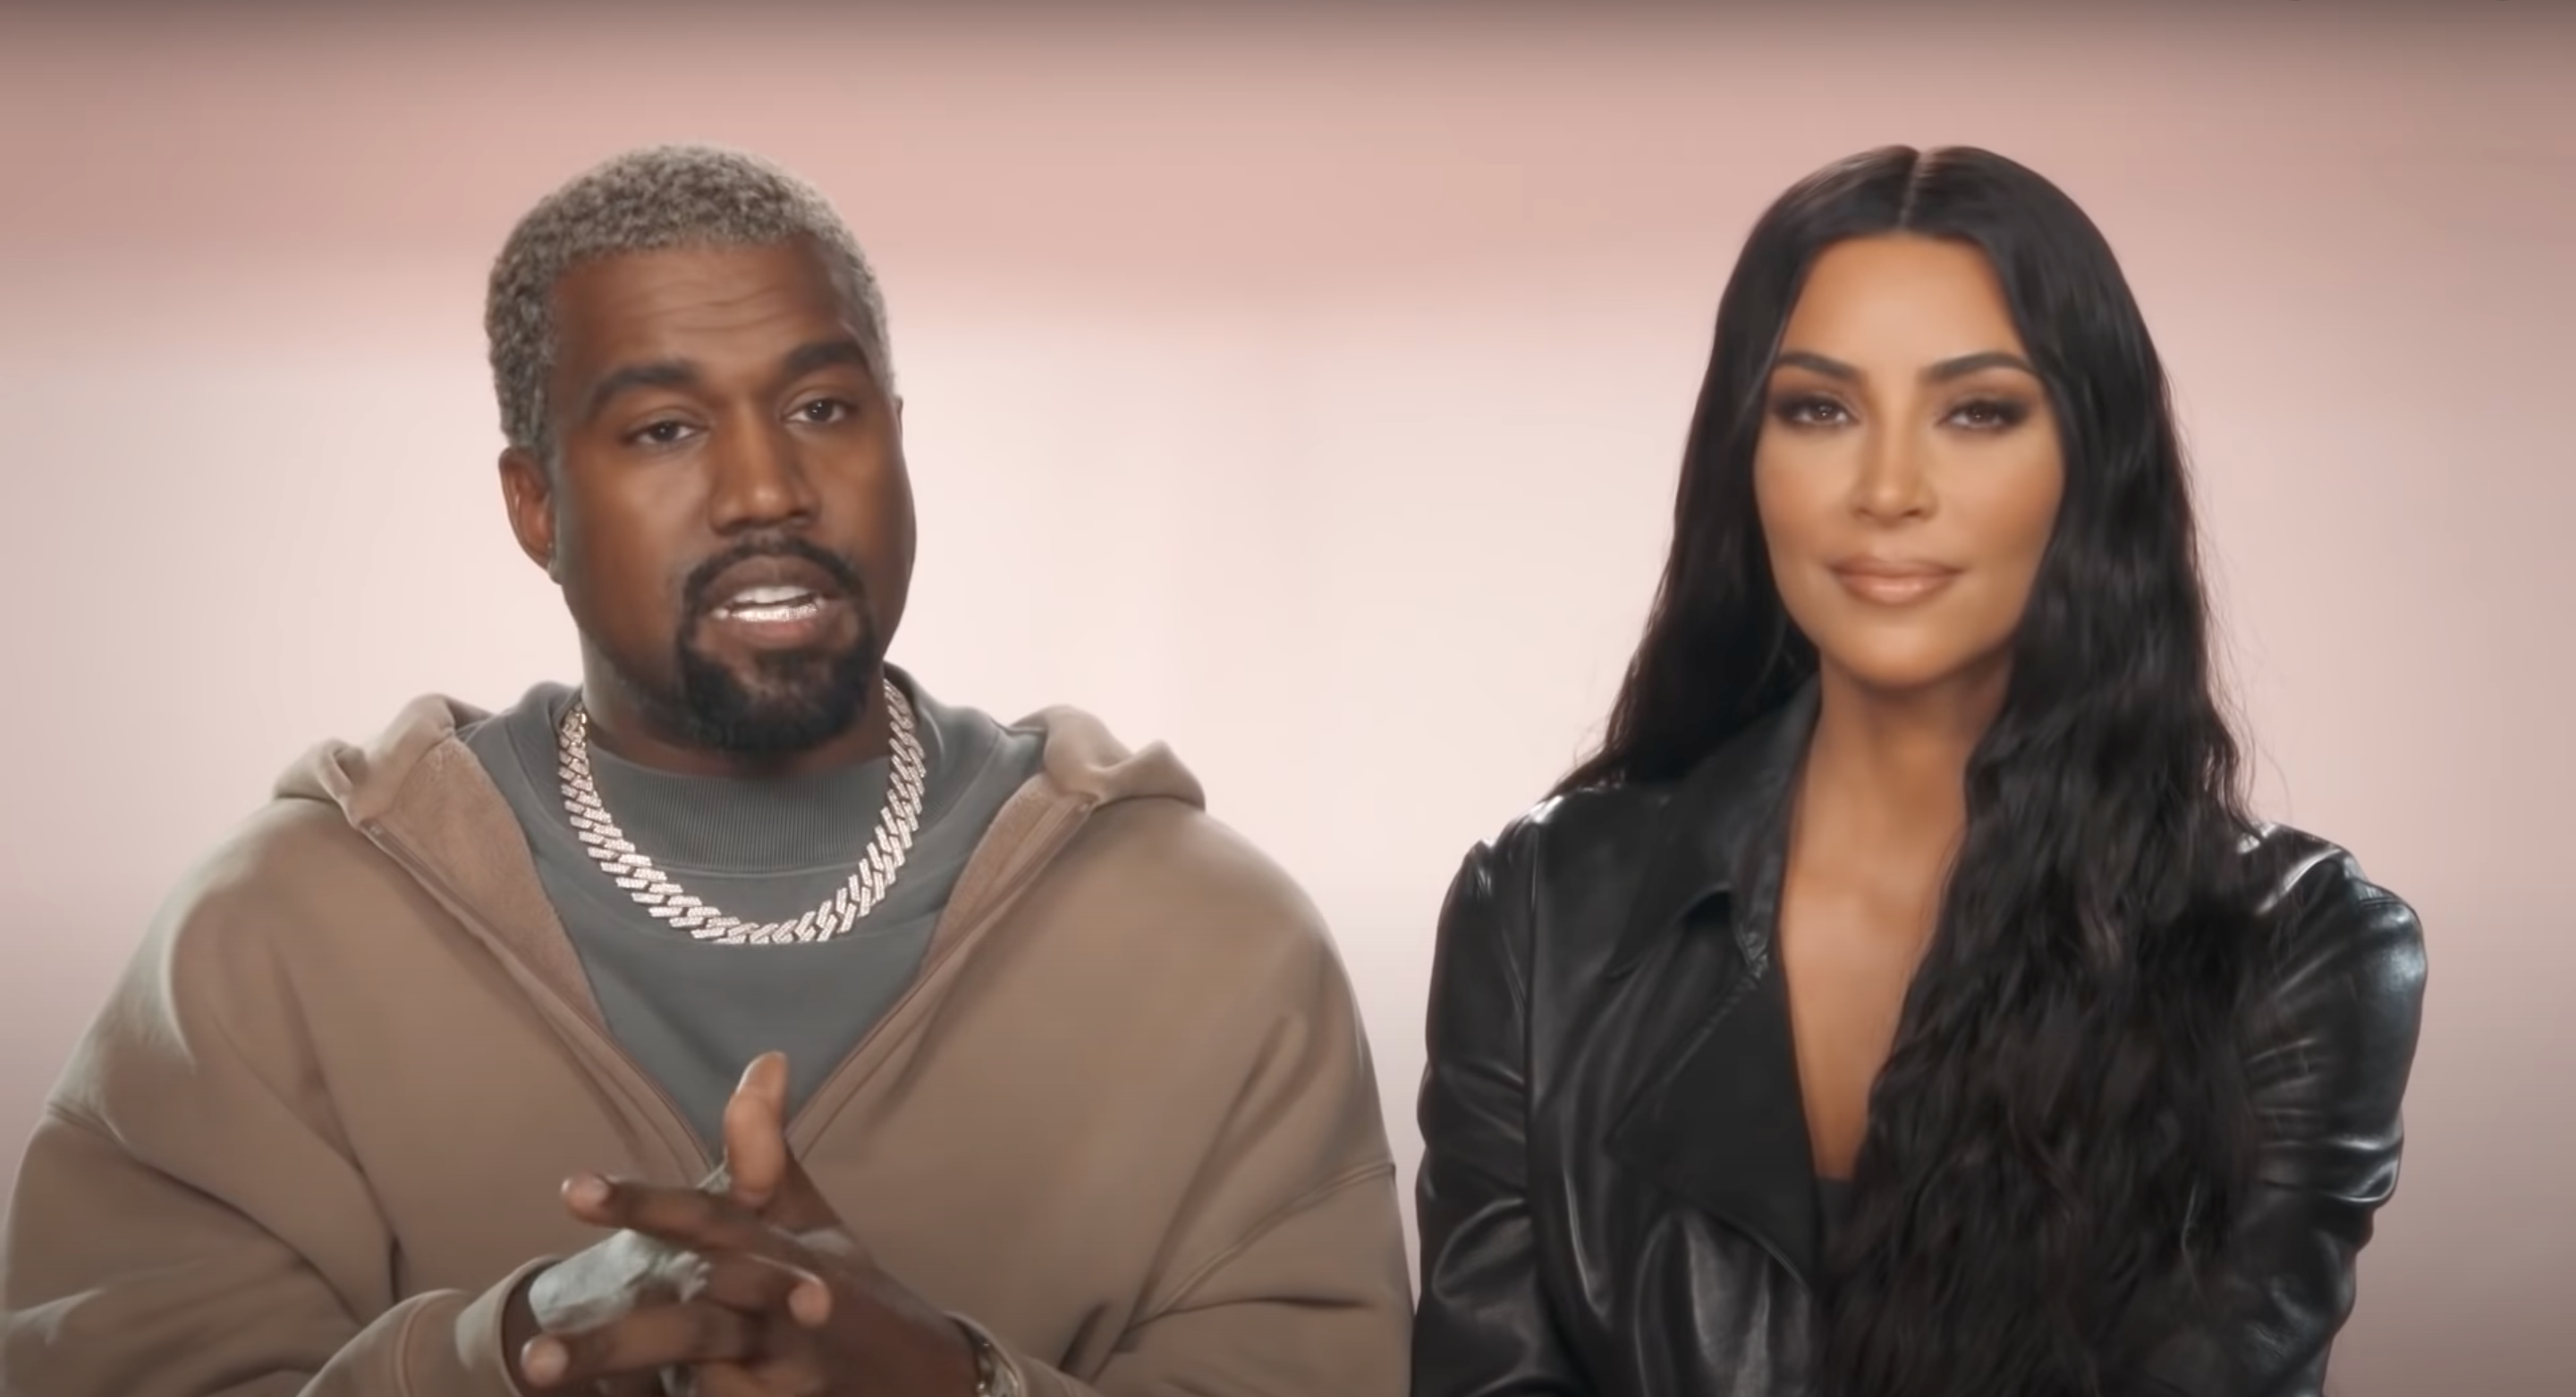 Screenshot of Kanye West and Kim Kardashian from an episode of Keeping Up With The Kardashians.